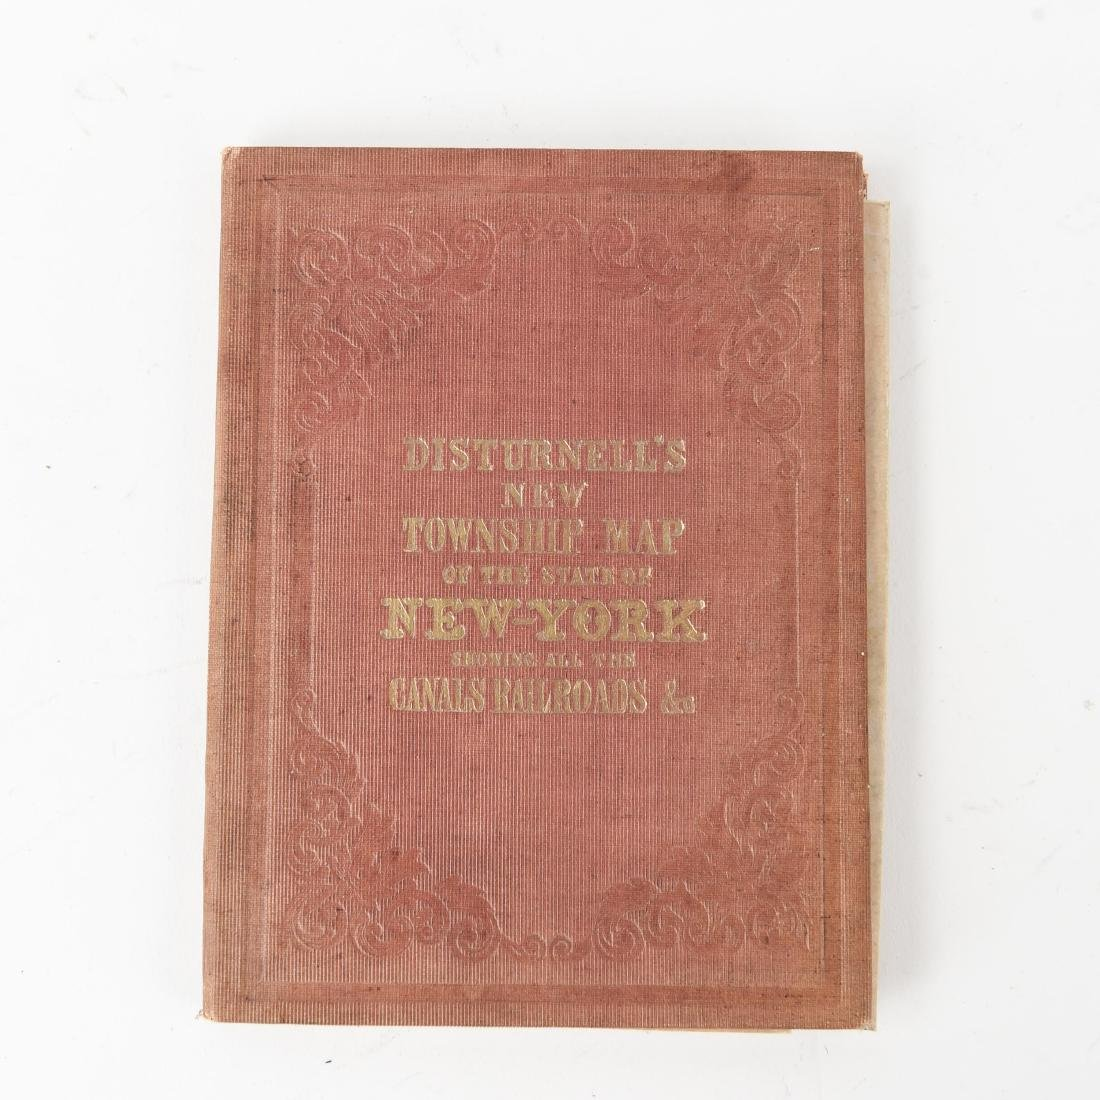 1858 SMITH-DISTURNELL'S NEW TOWNSHIP MAP OF NY